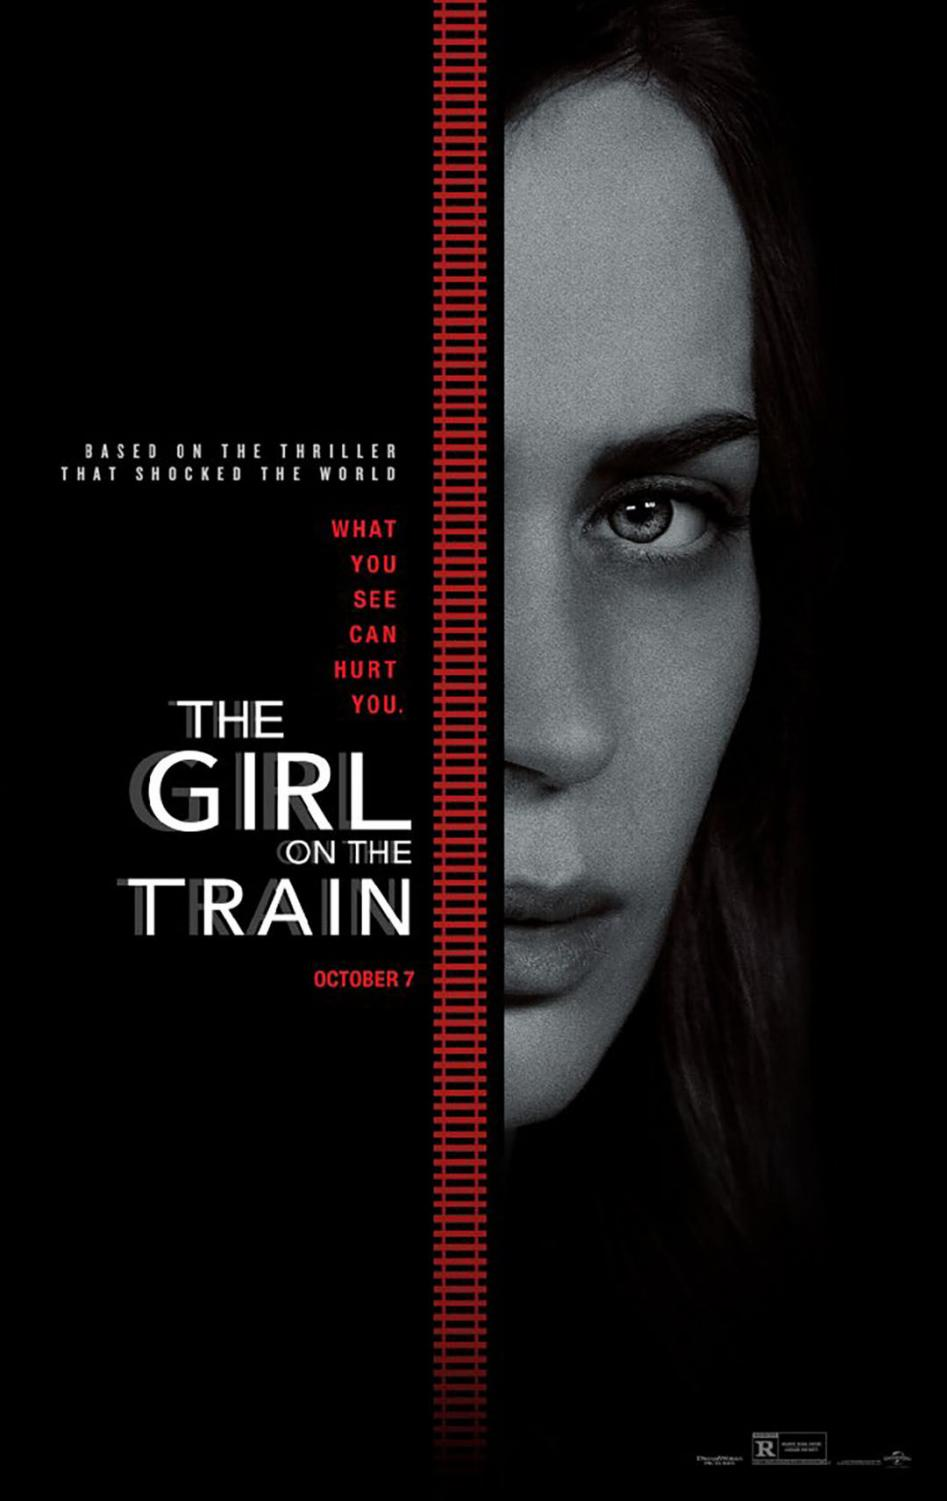 'The Girl on the Train' throws a number of plot twists that keeps the audience engaged and guessing.